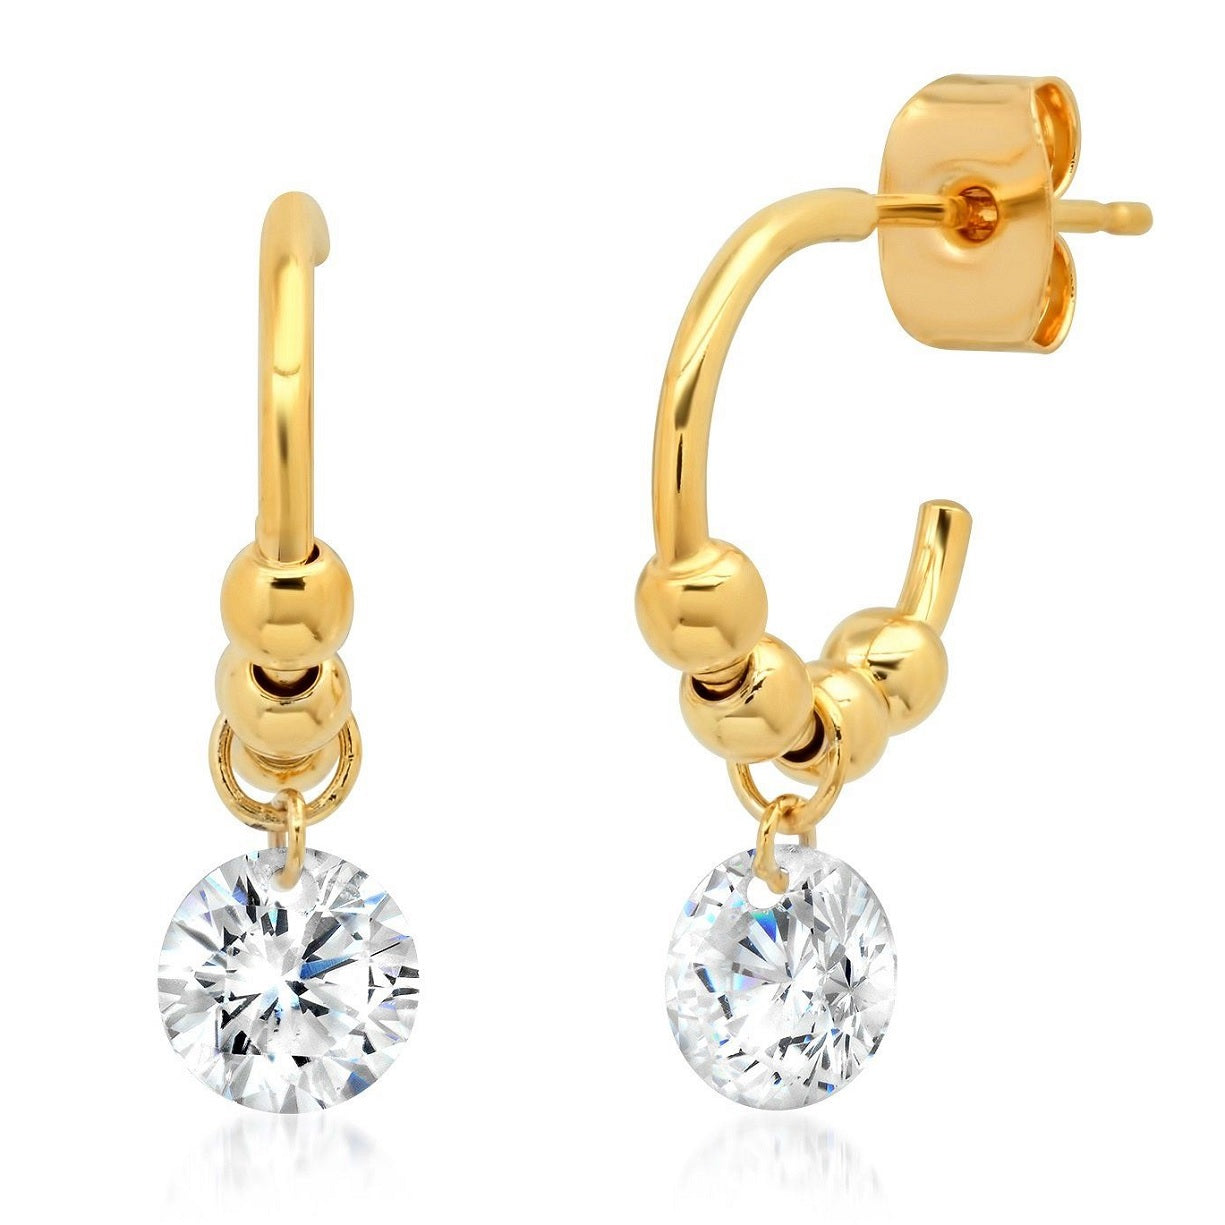 Floating Gold Ball Huggie Earring